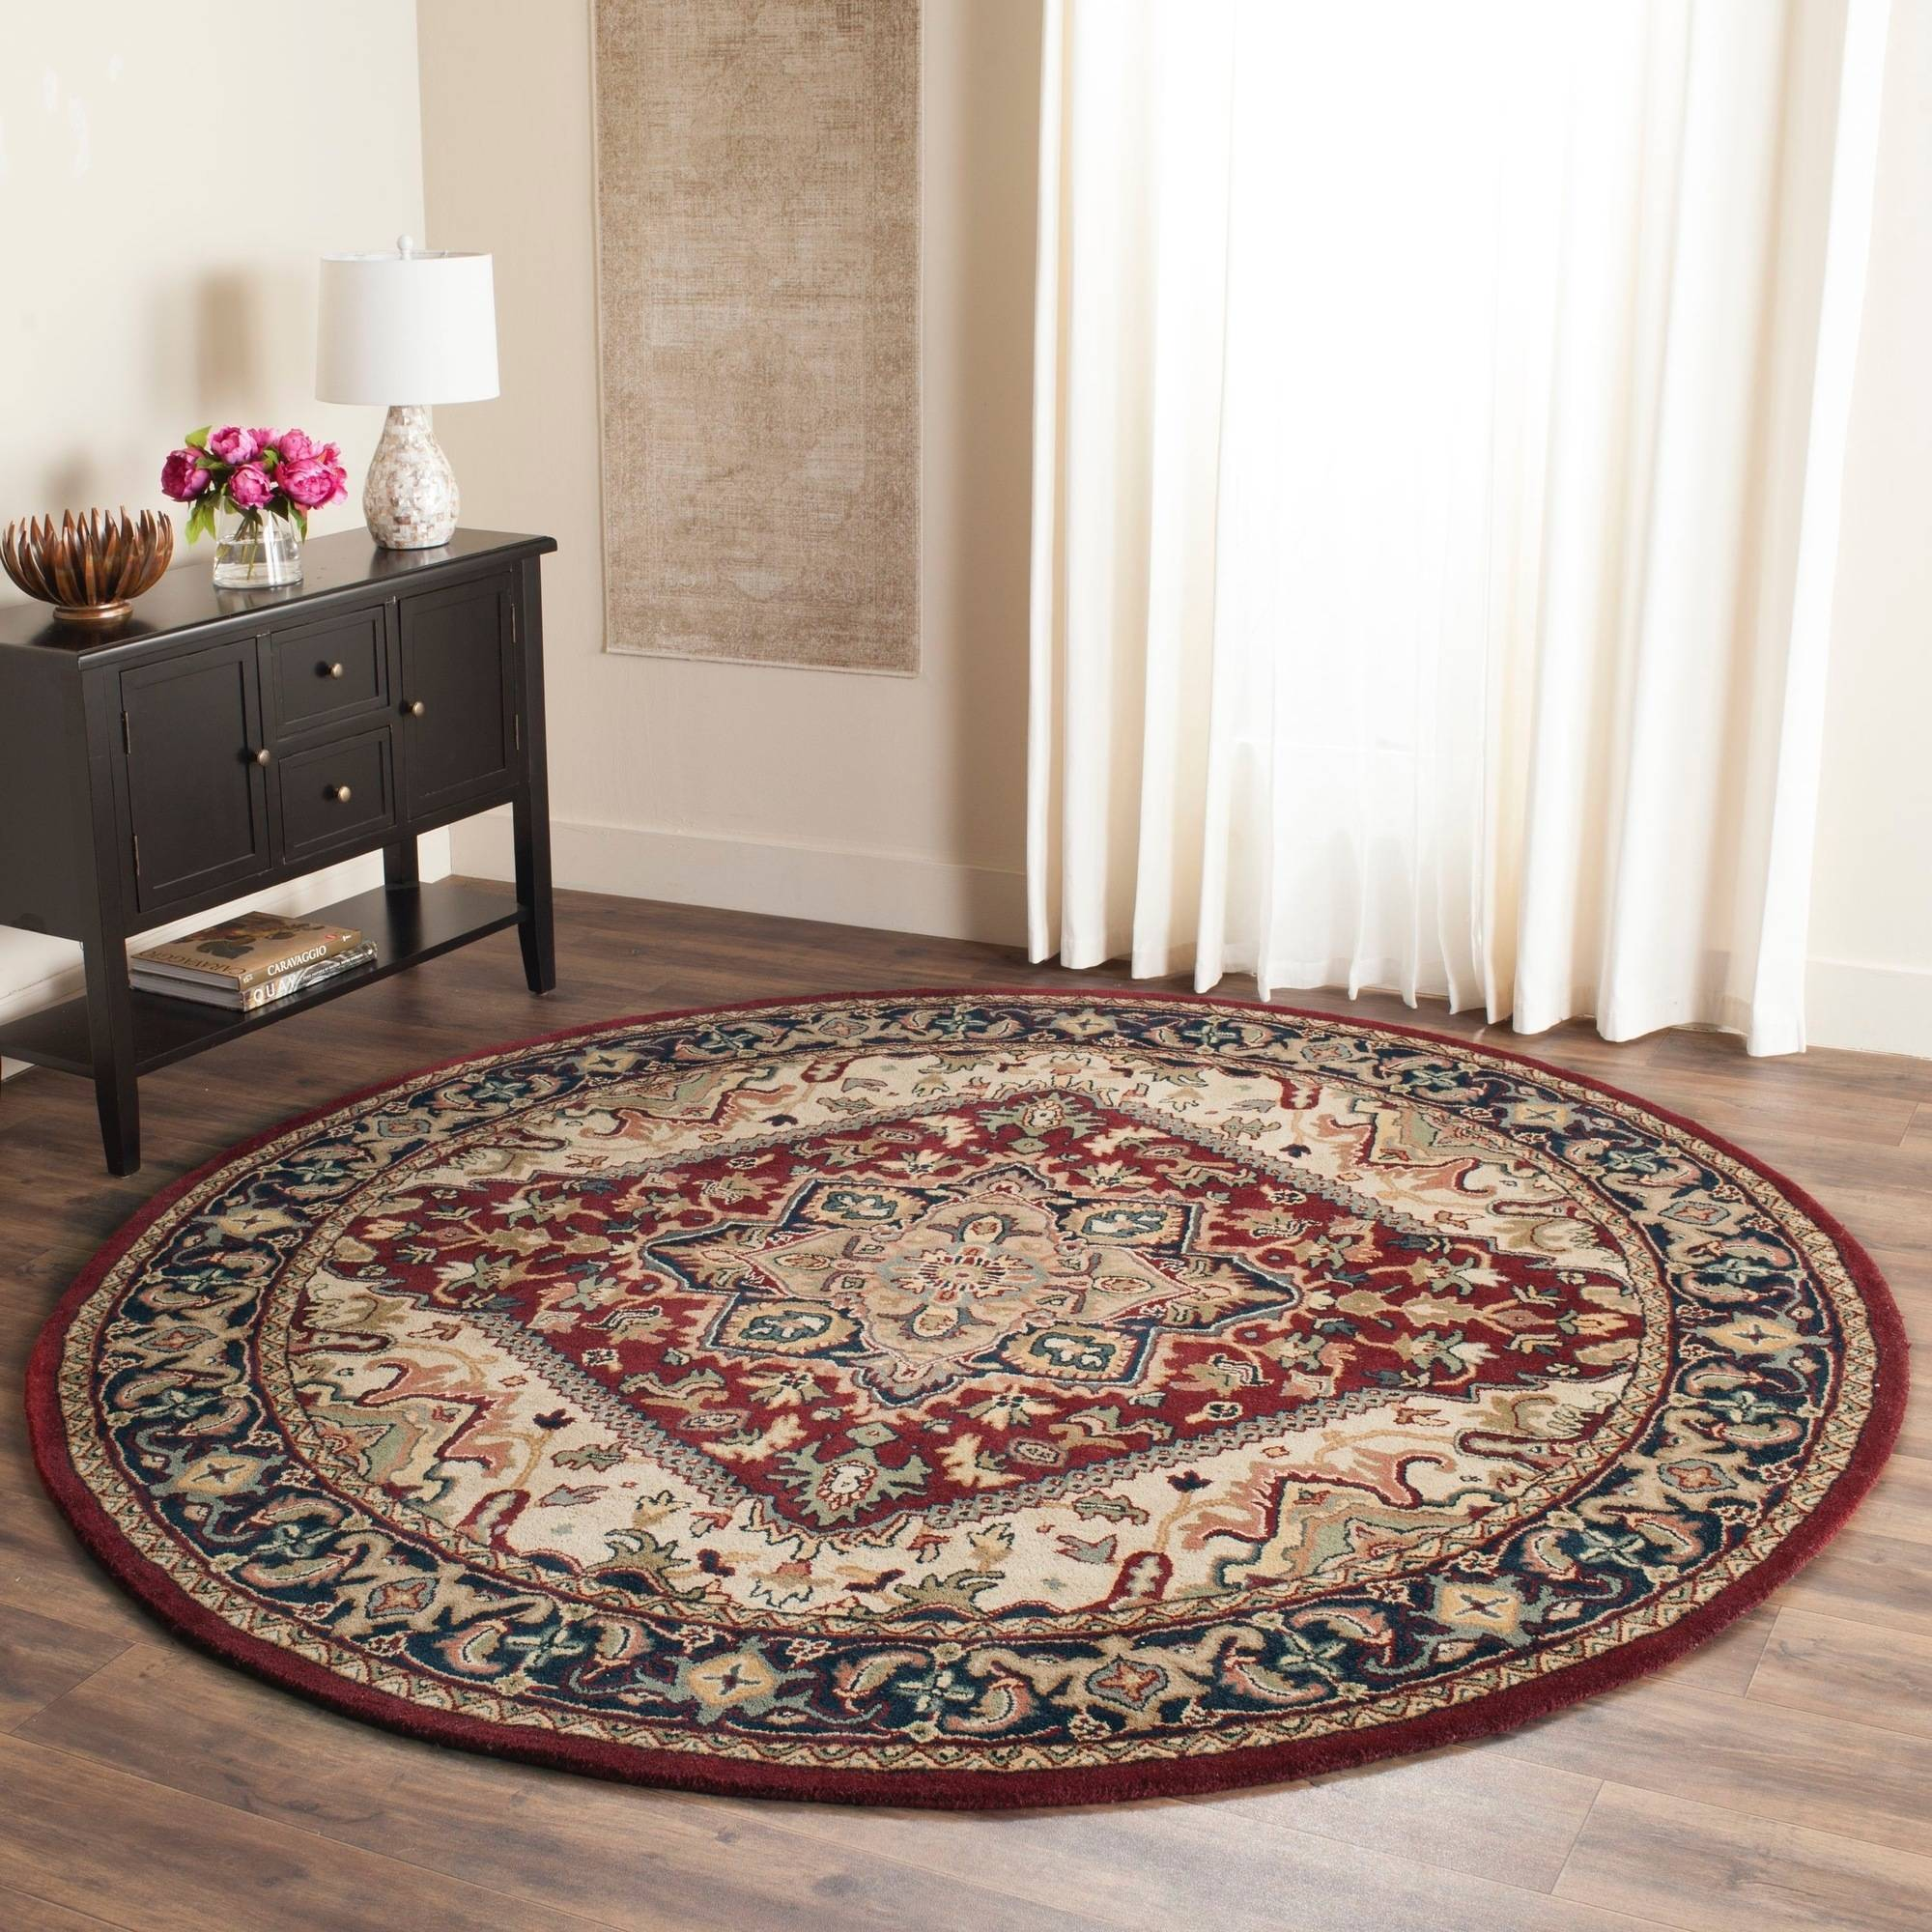 Safavieh Heritage Collection Hg625a Handmade Red Wool Round Area Rug 3 Feet 6